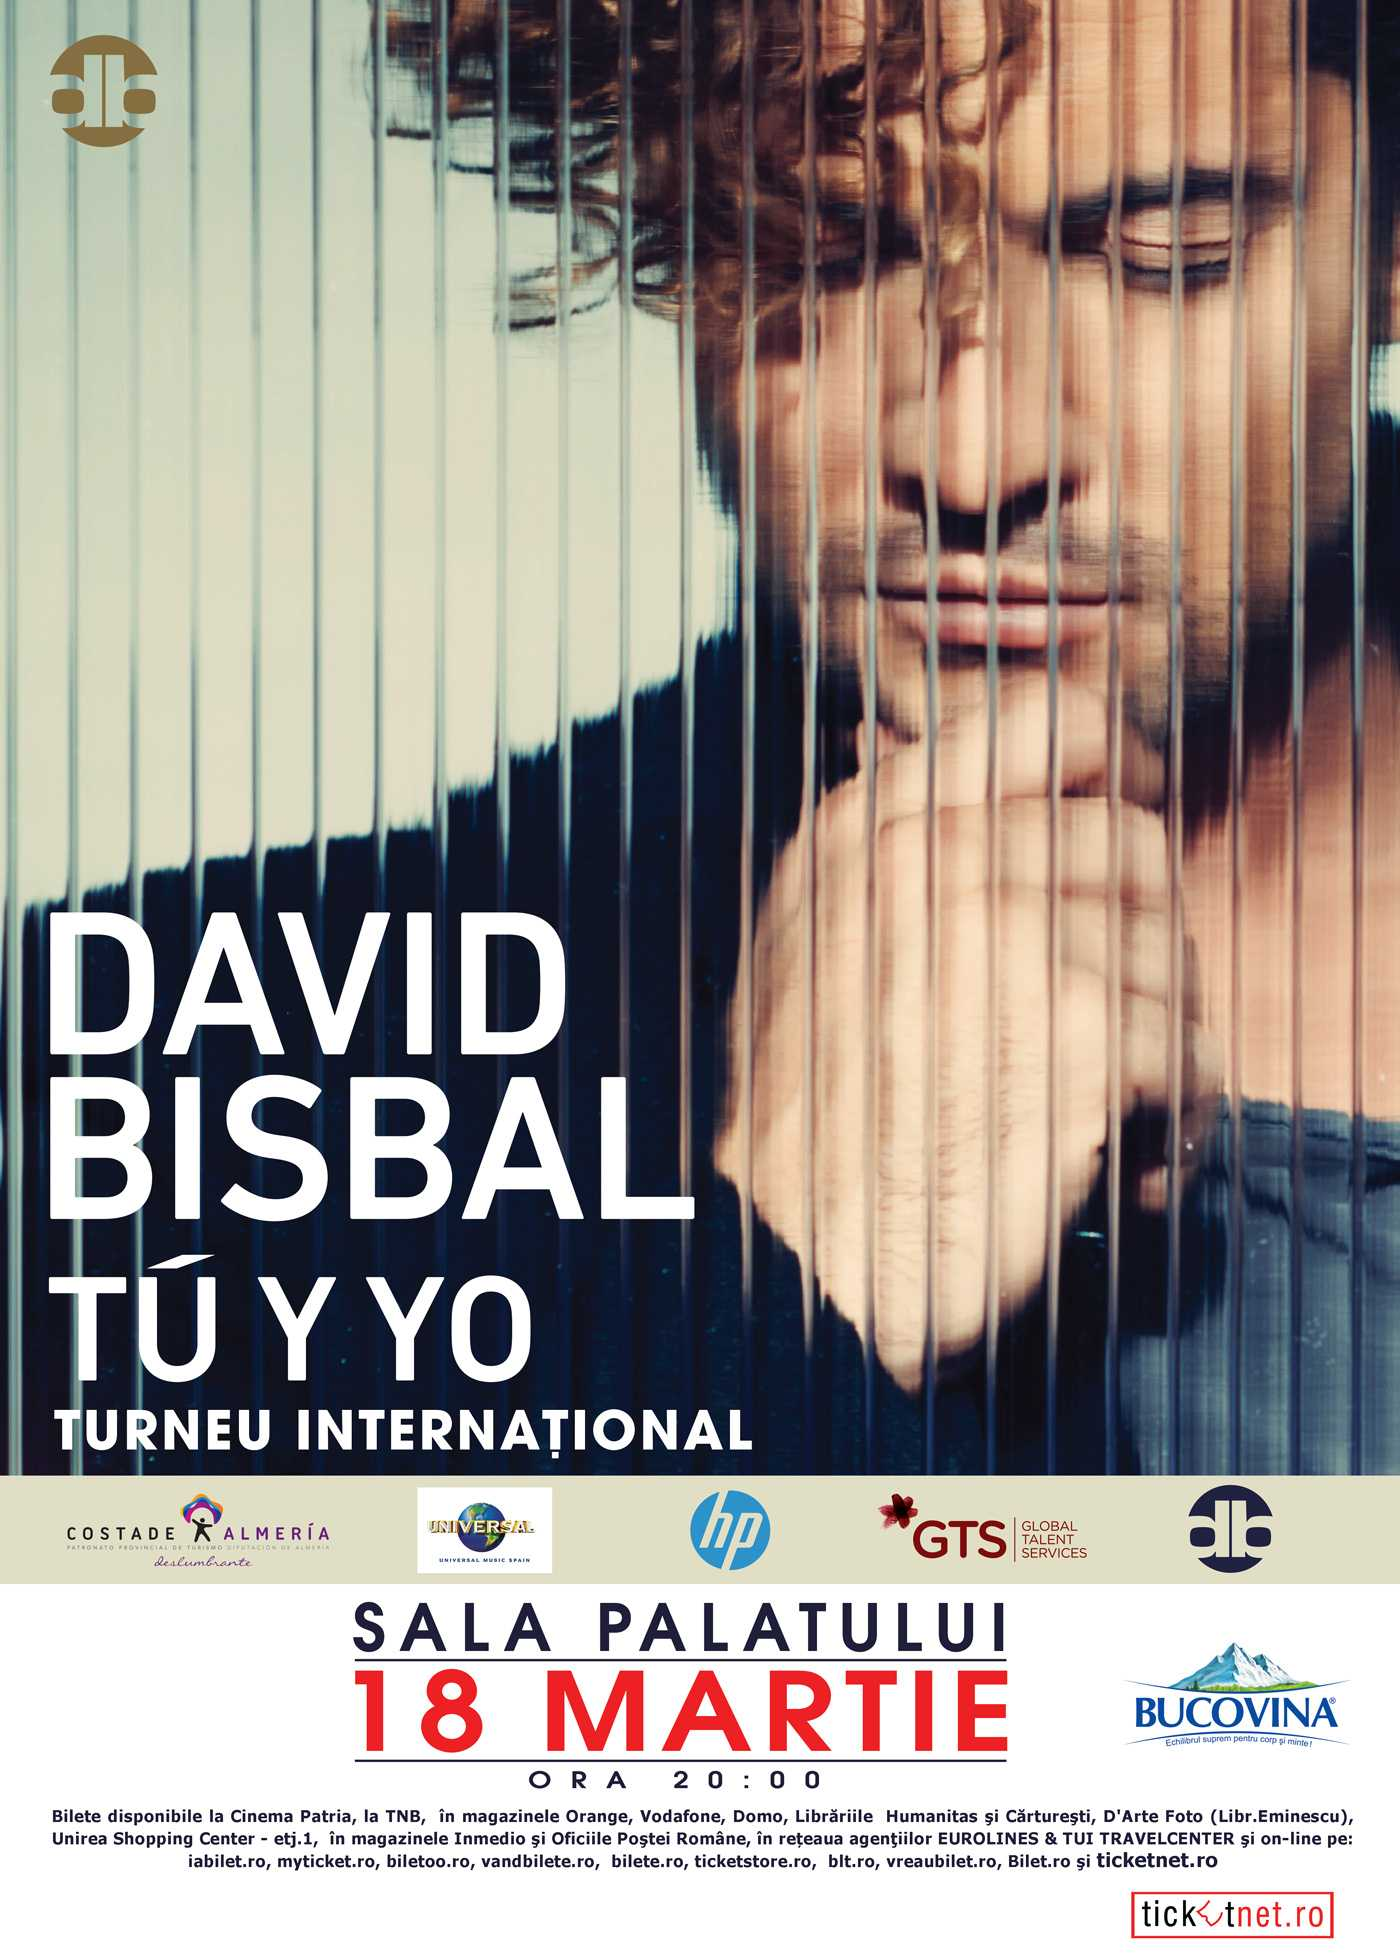 David Bisbal revine in concert la Bucuresti